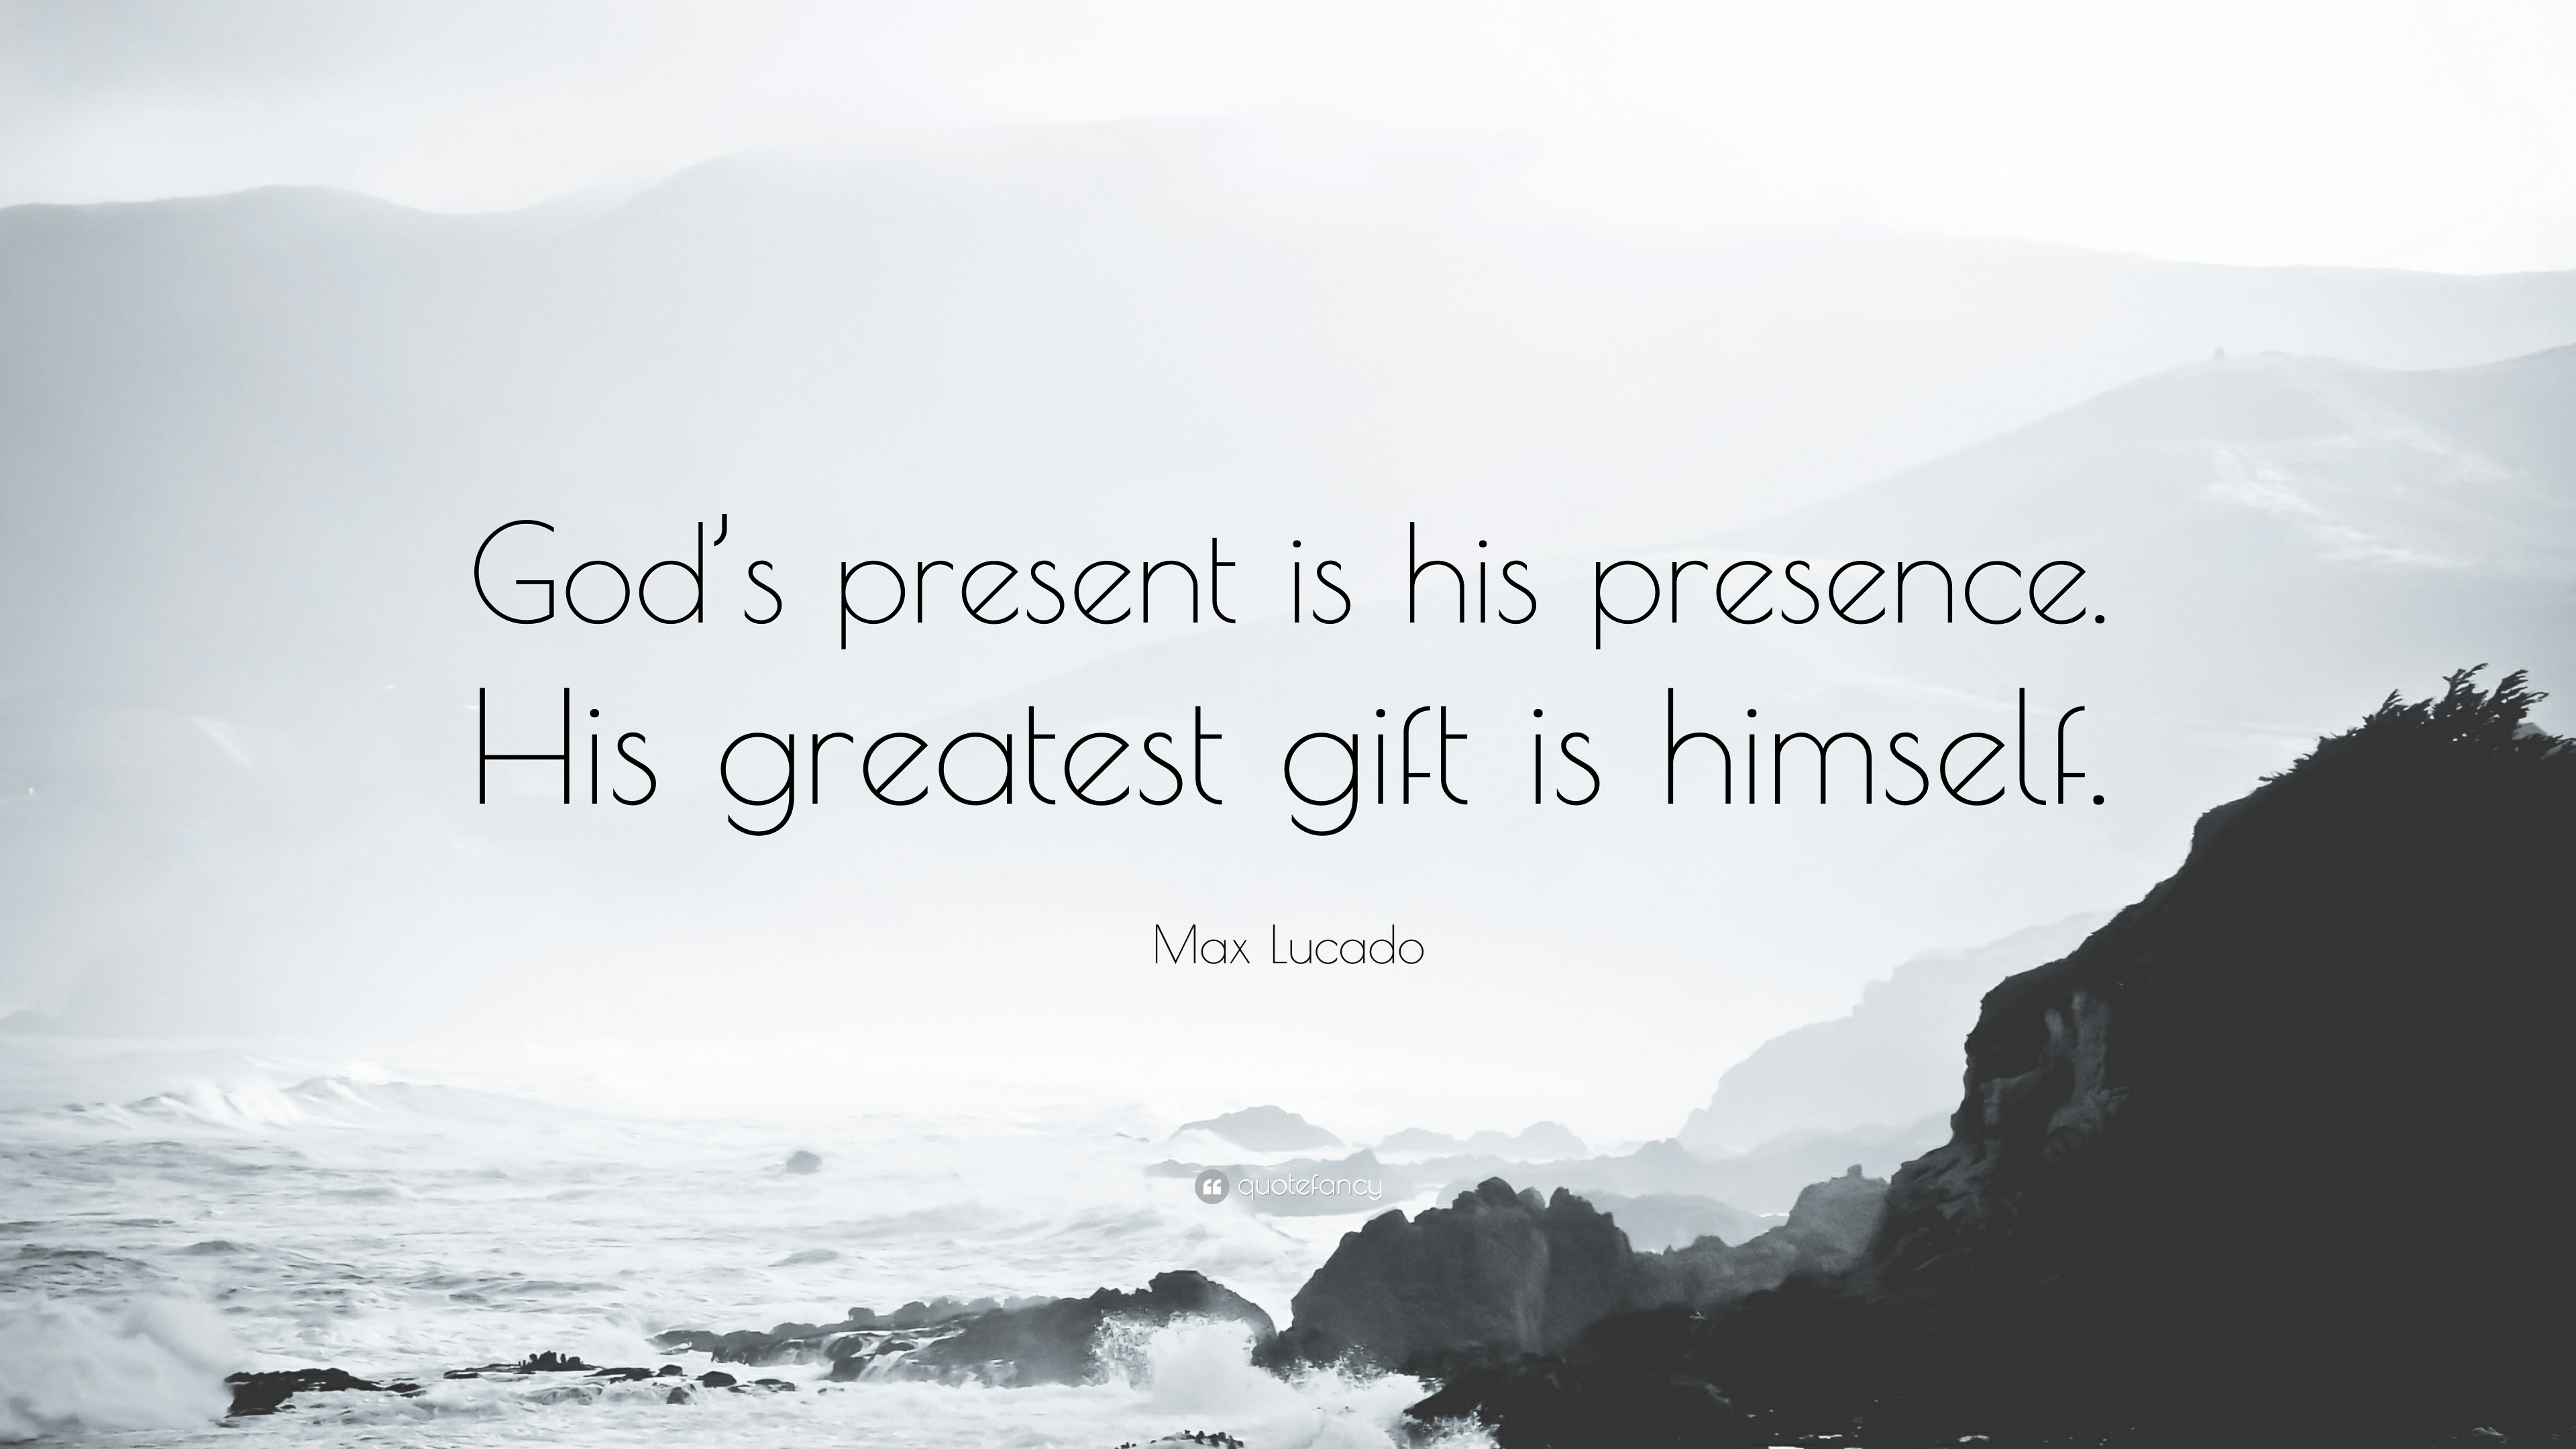 169881-max-lucado-quote-god-s-present-is-his-presence-his-greatest-gift